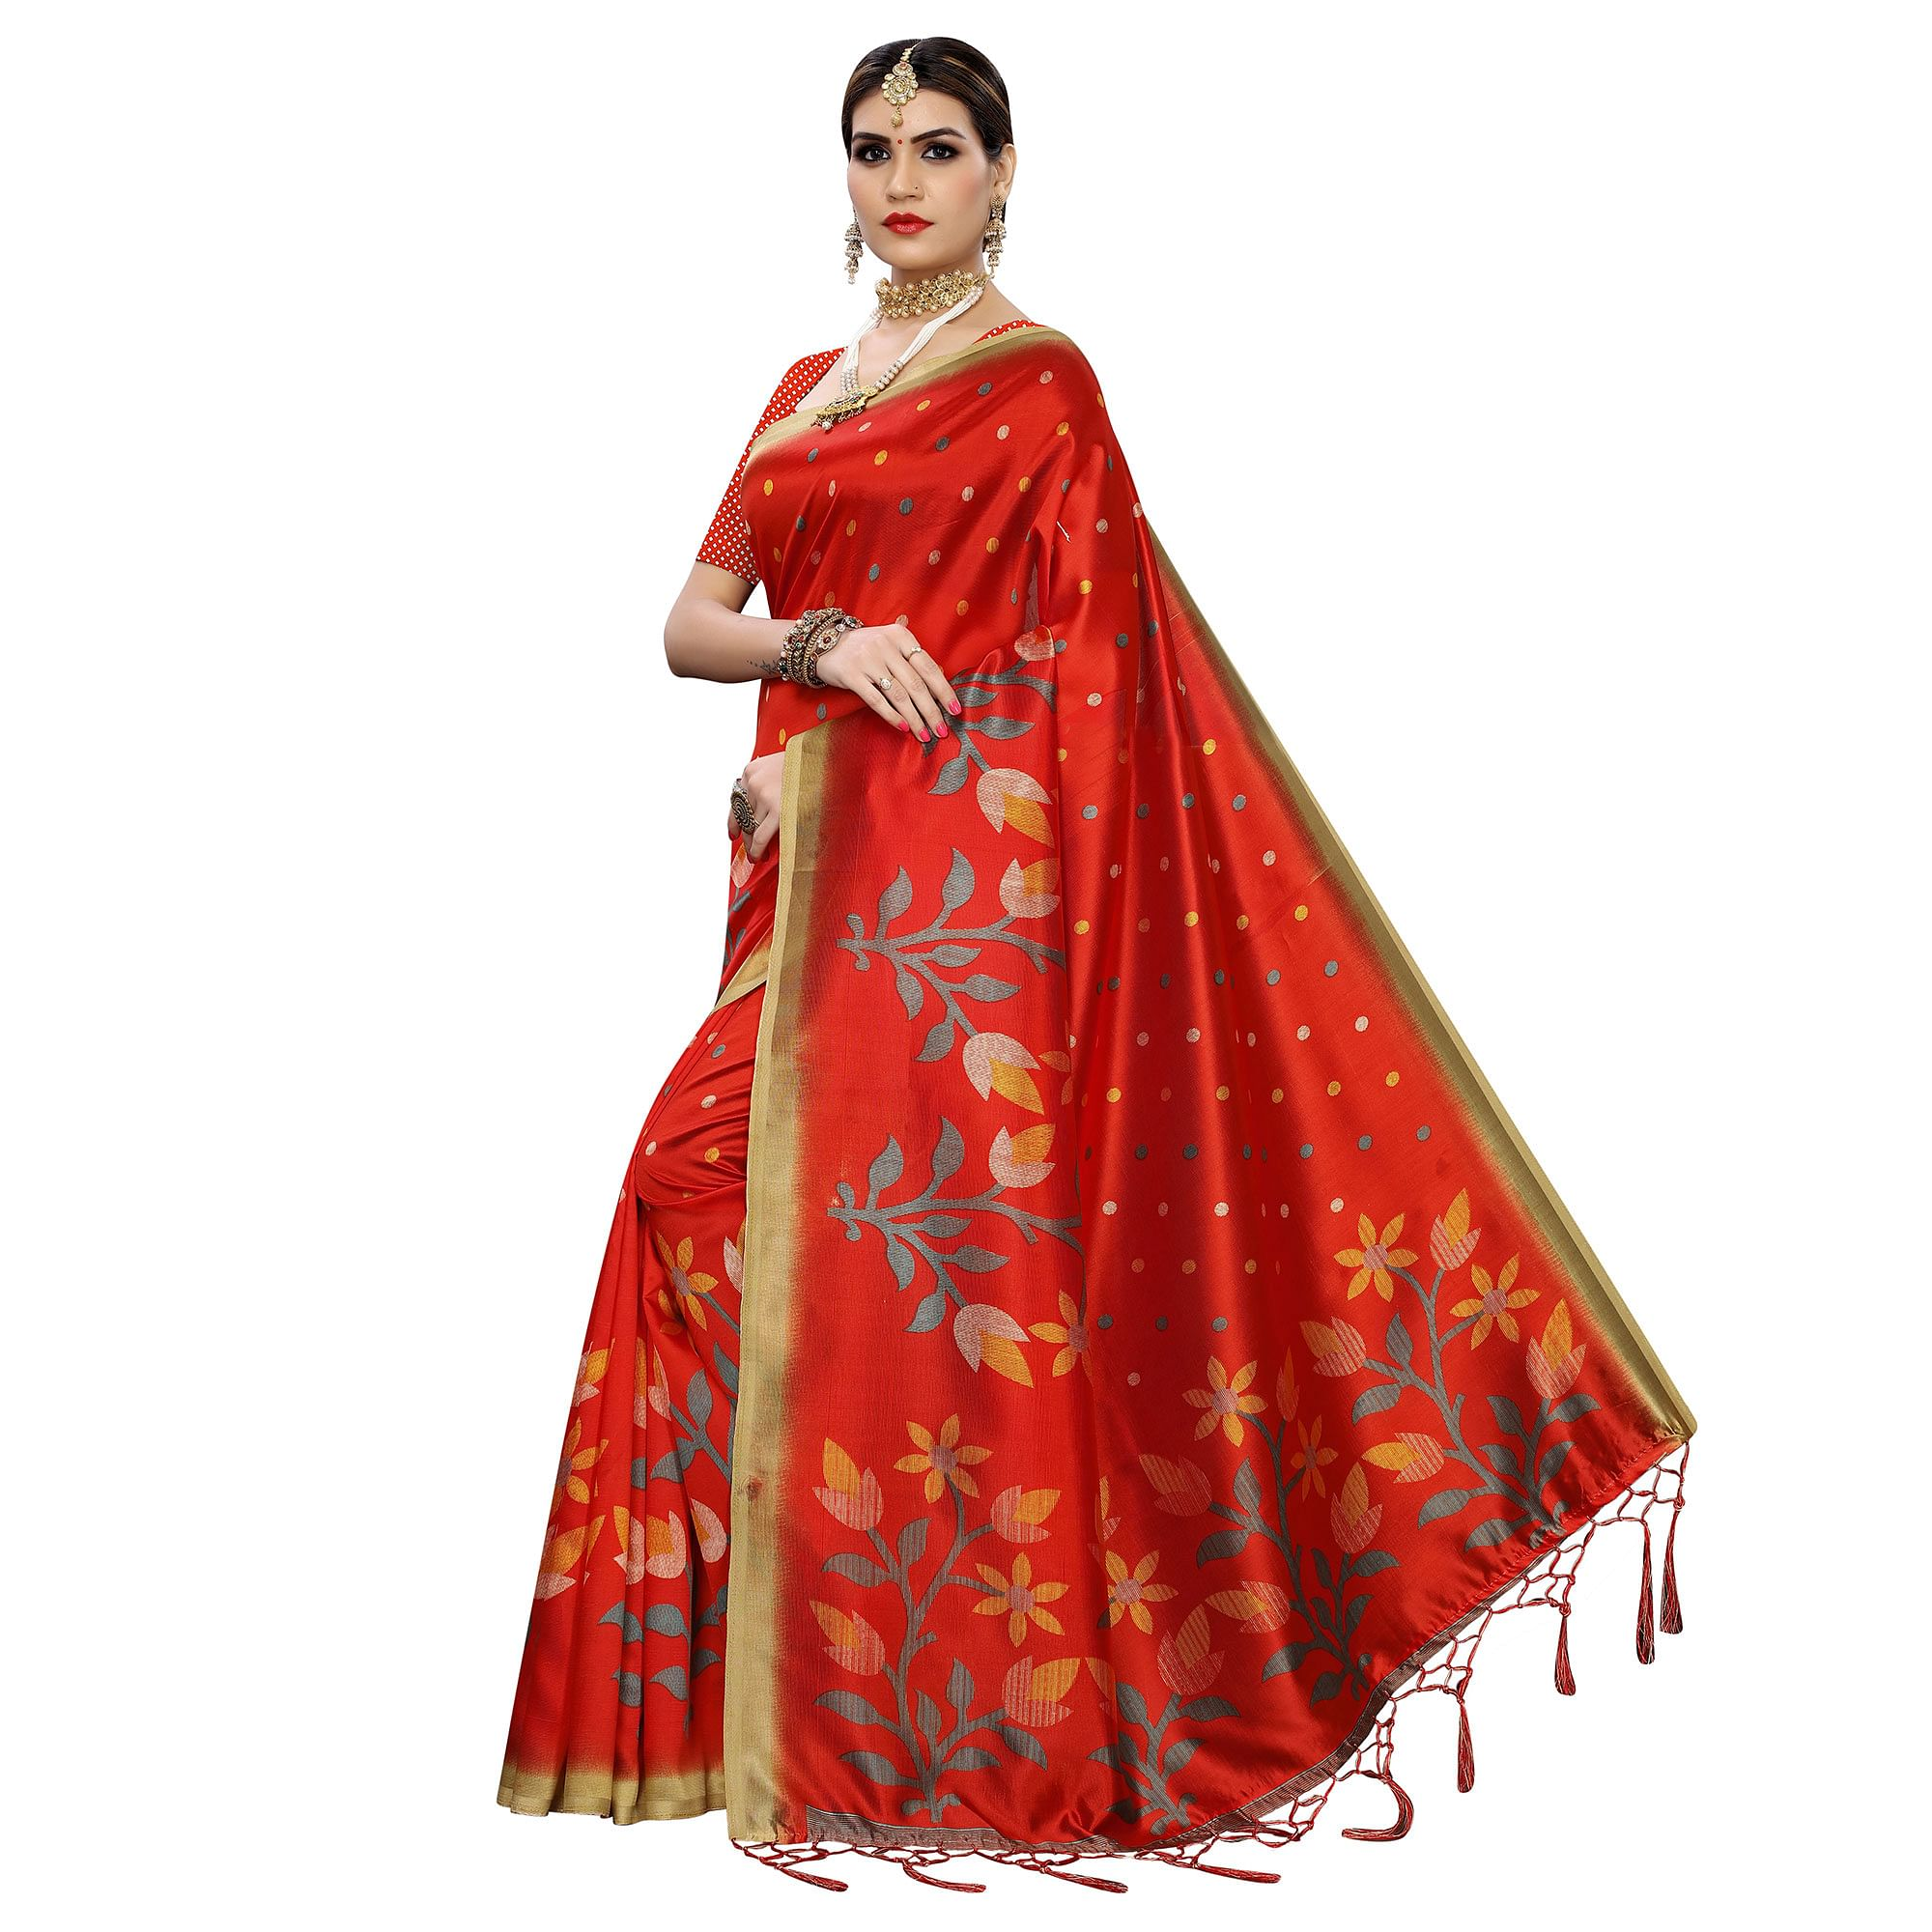 Energetic Red Colored Festive Wear Floral Printed Art Silk Saree With Tassel